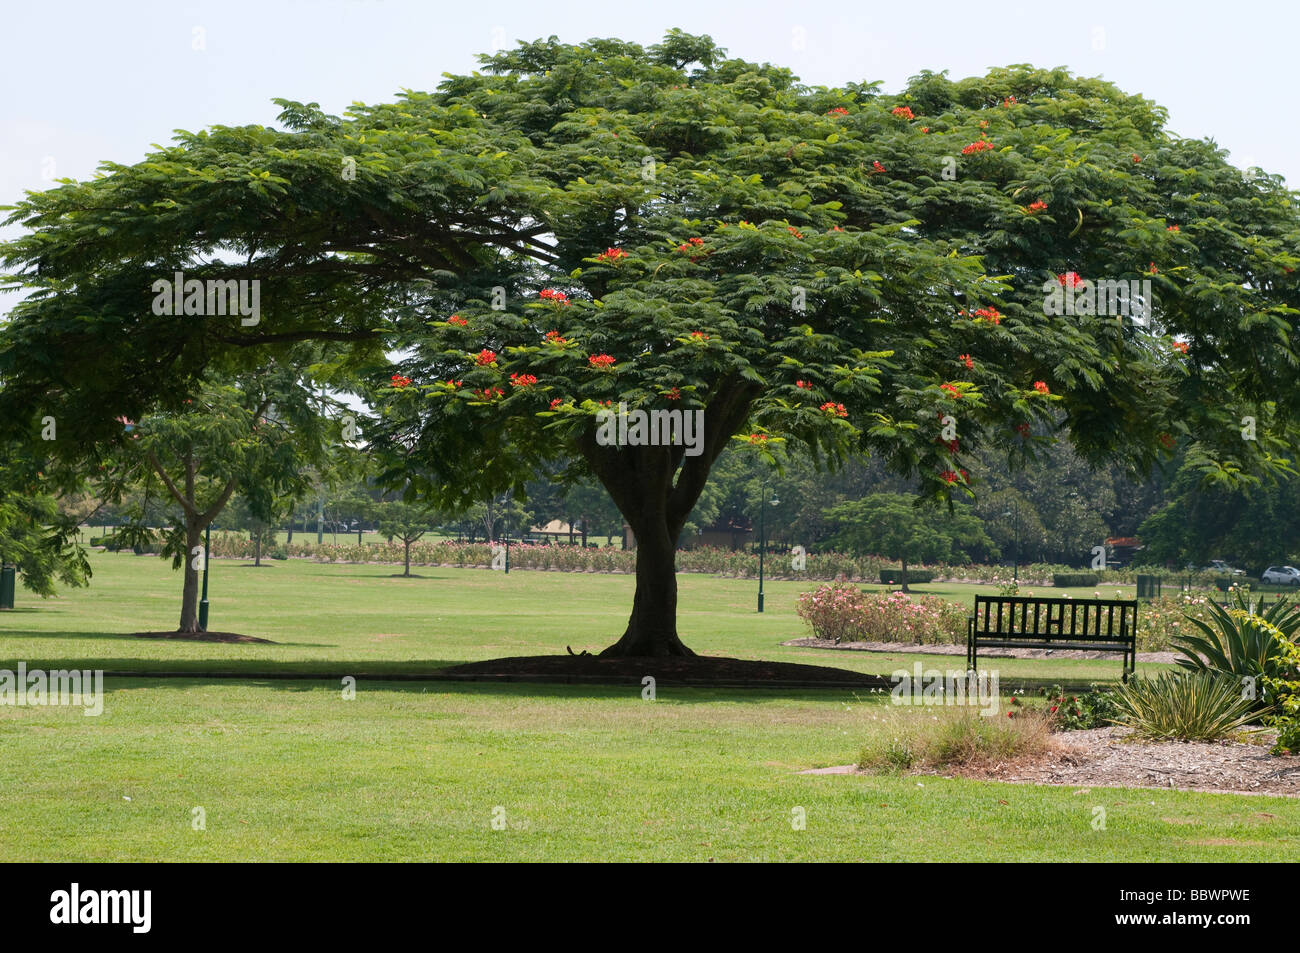 New Farm Park Brisbane Queensland Australia - Stock Image